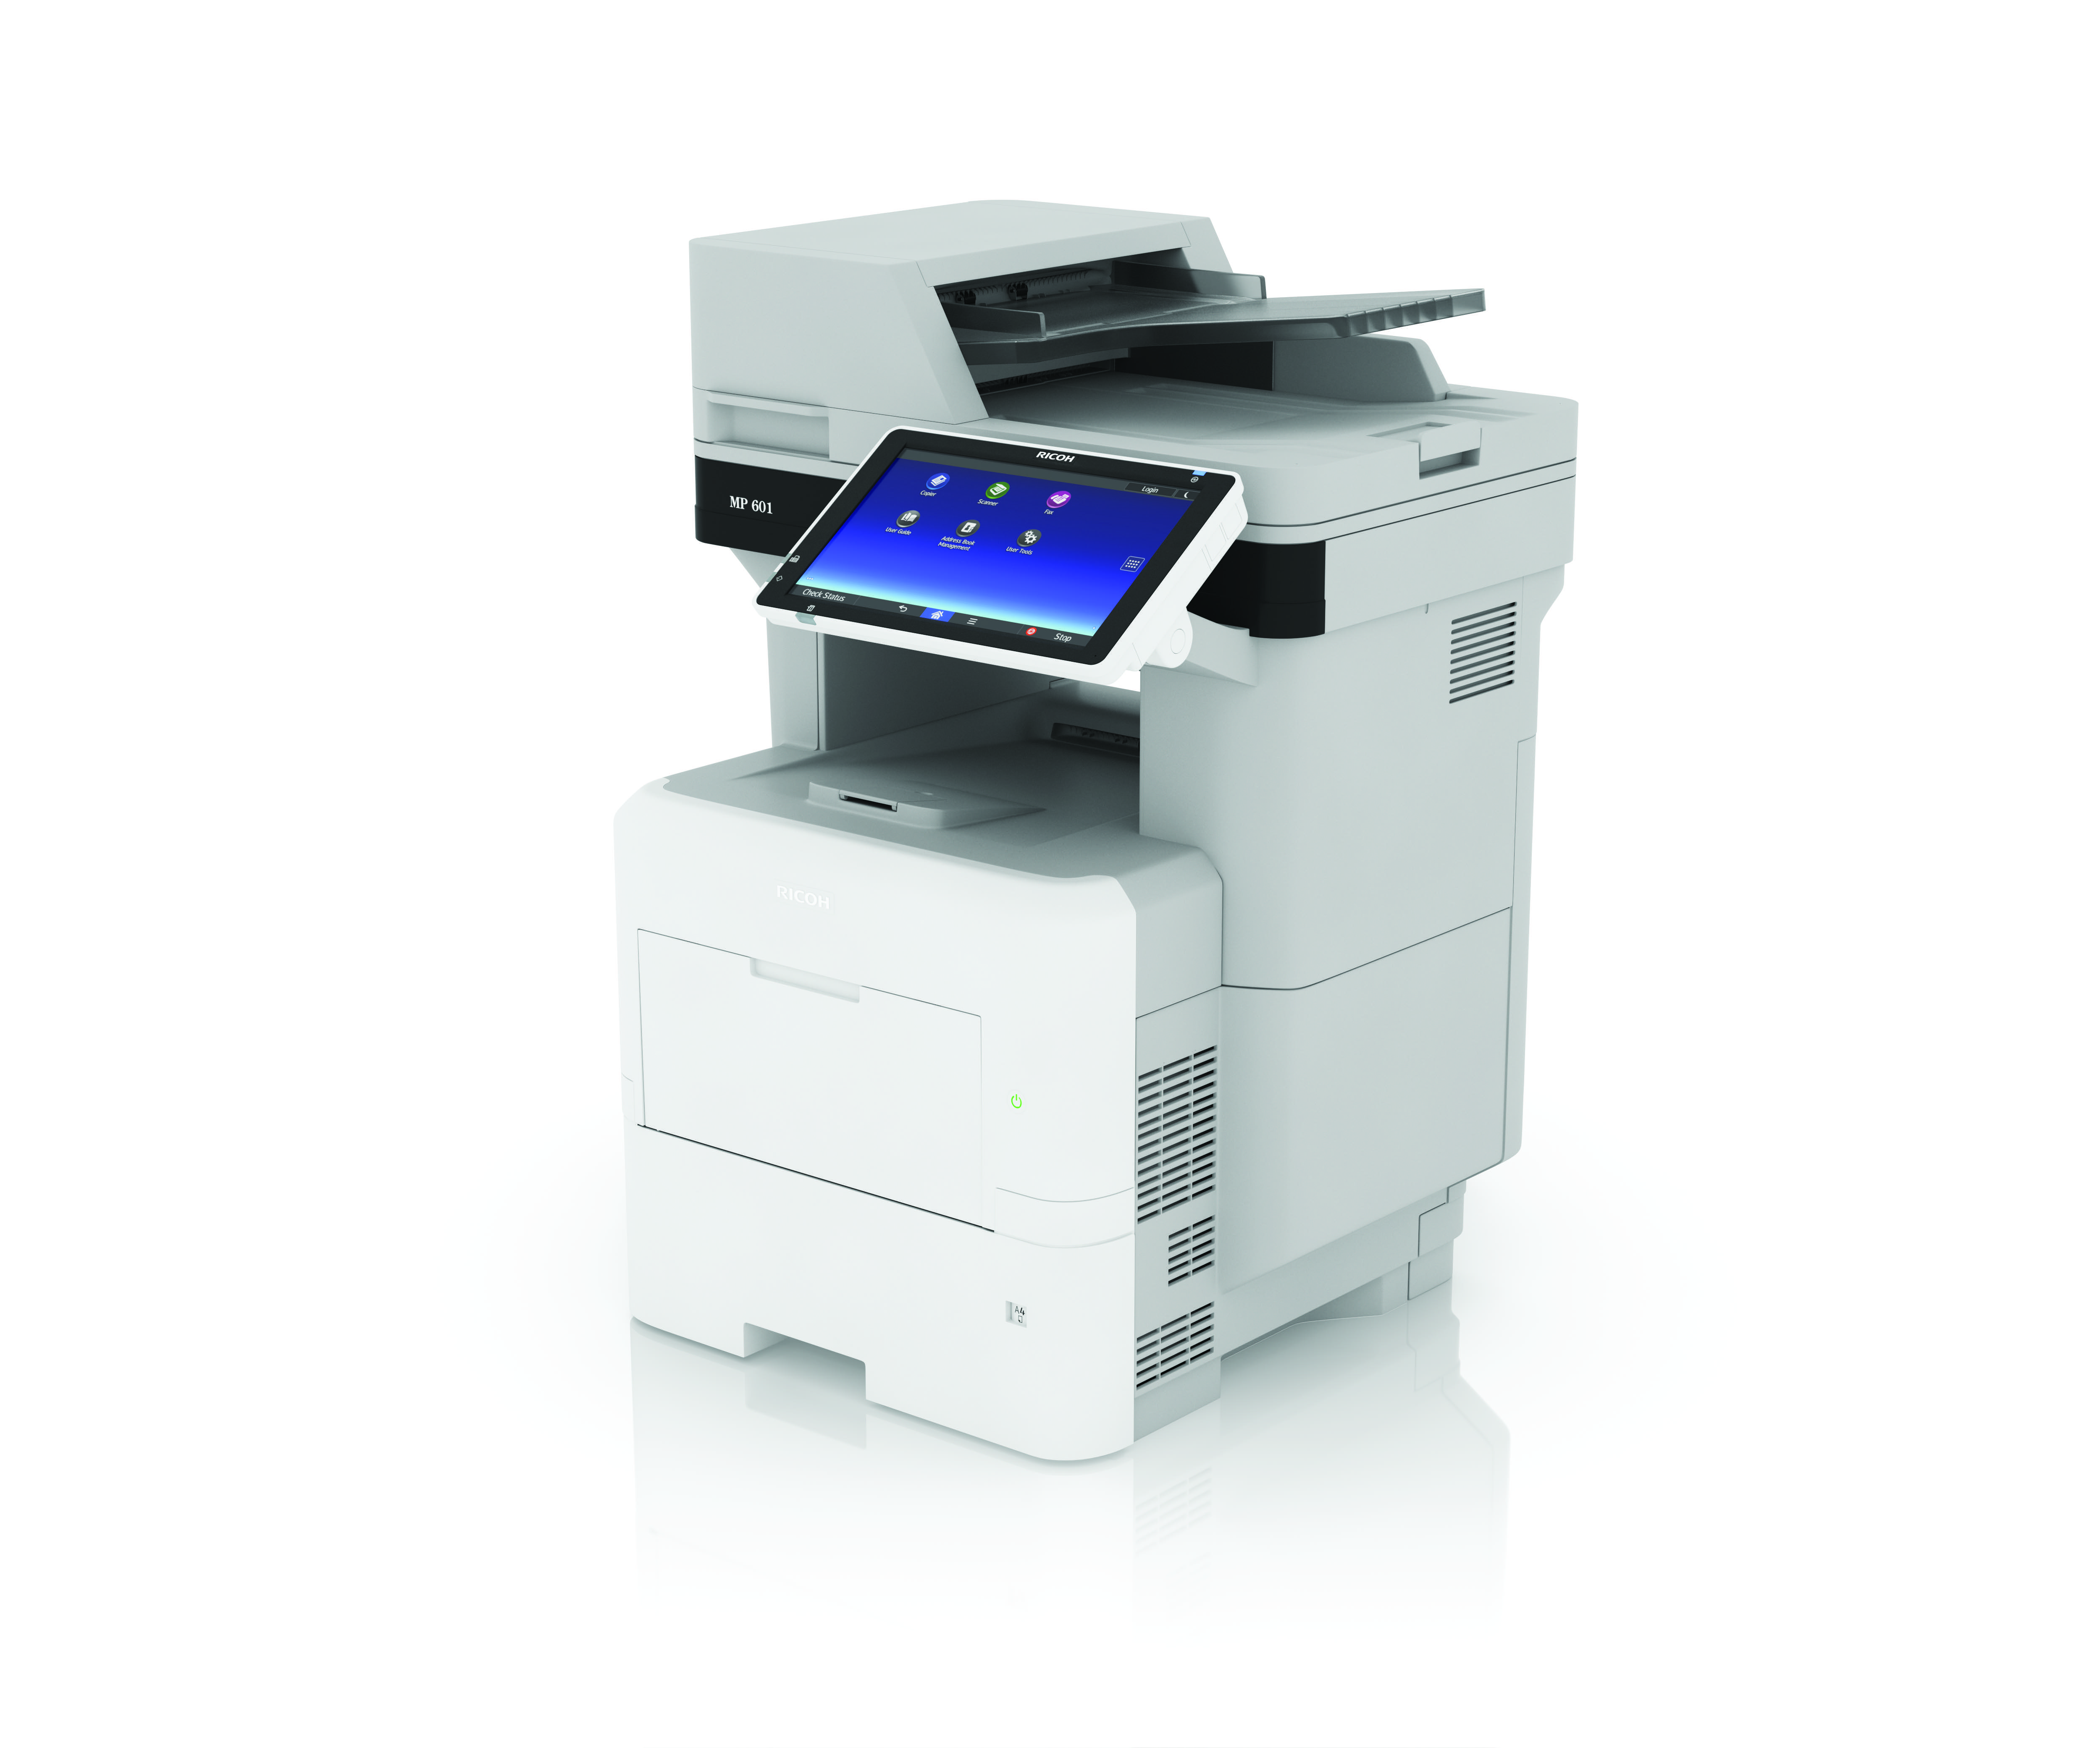 Ricoh Copiers - Photocopiers | MFPs | Printers from Insight Systems